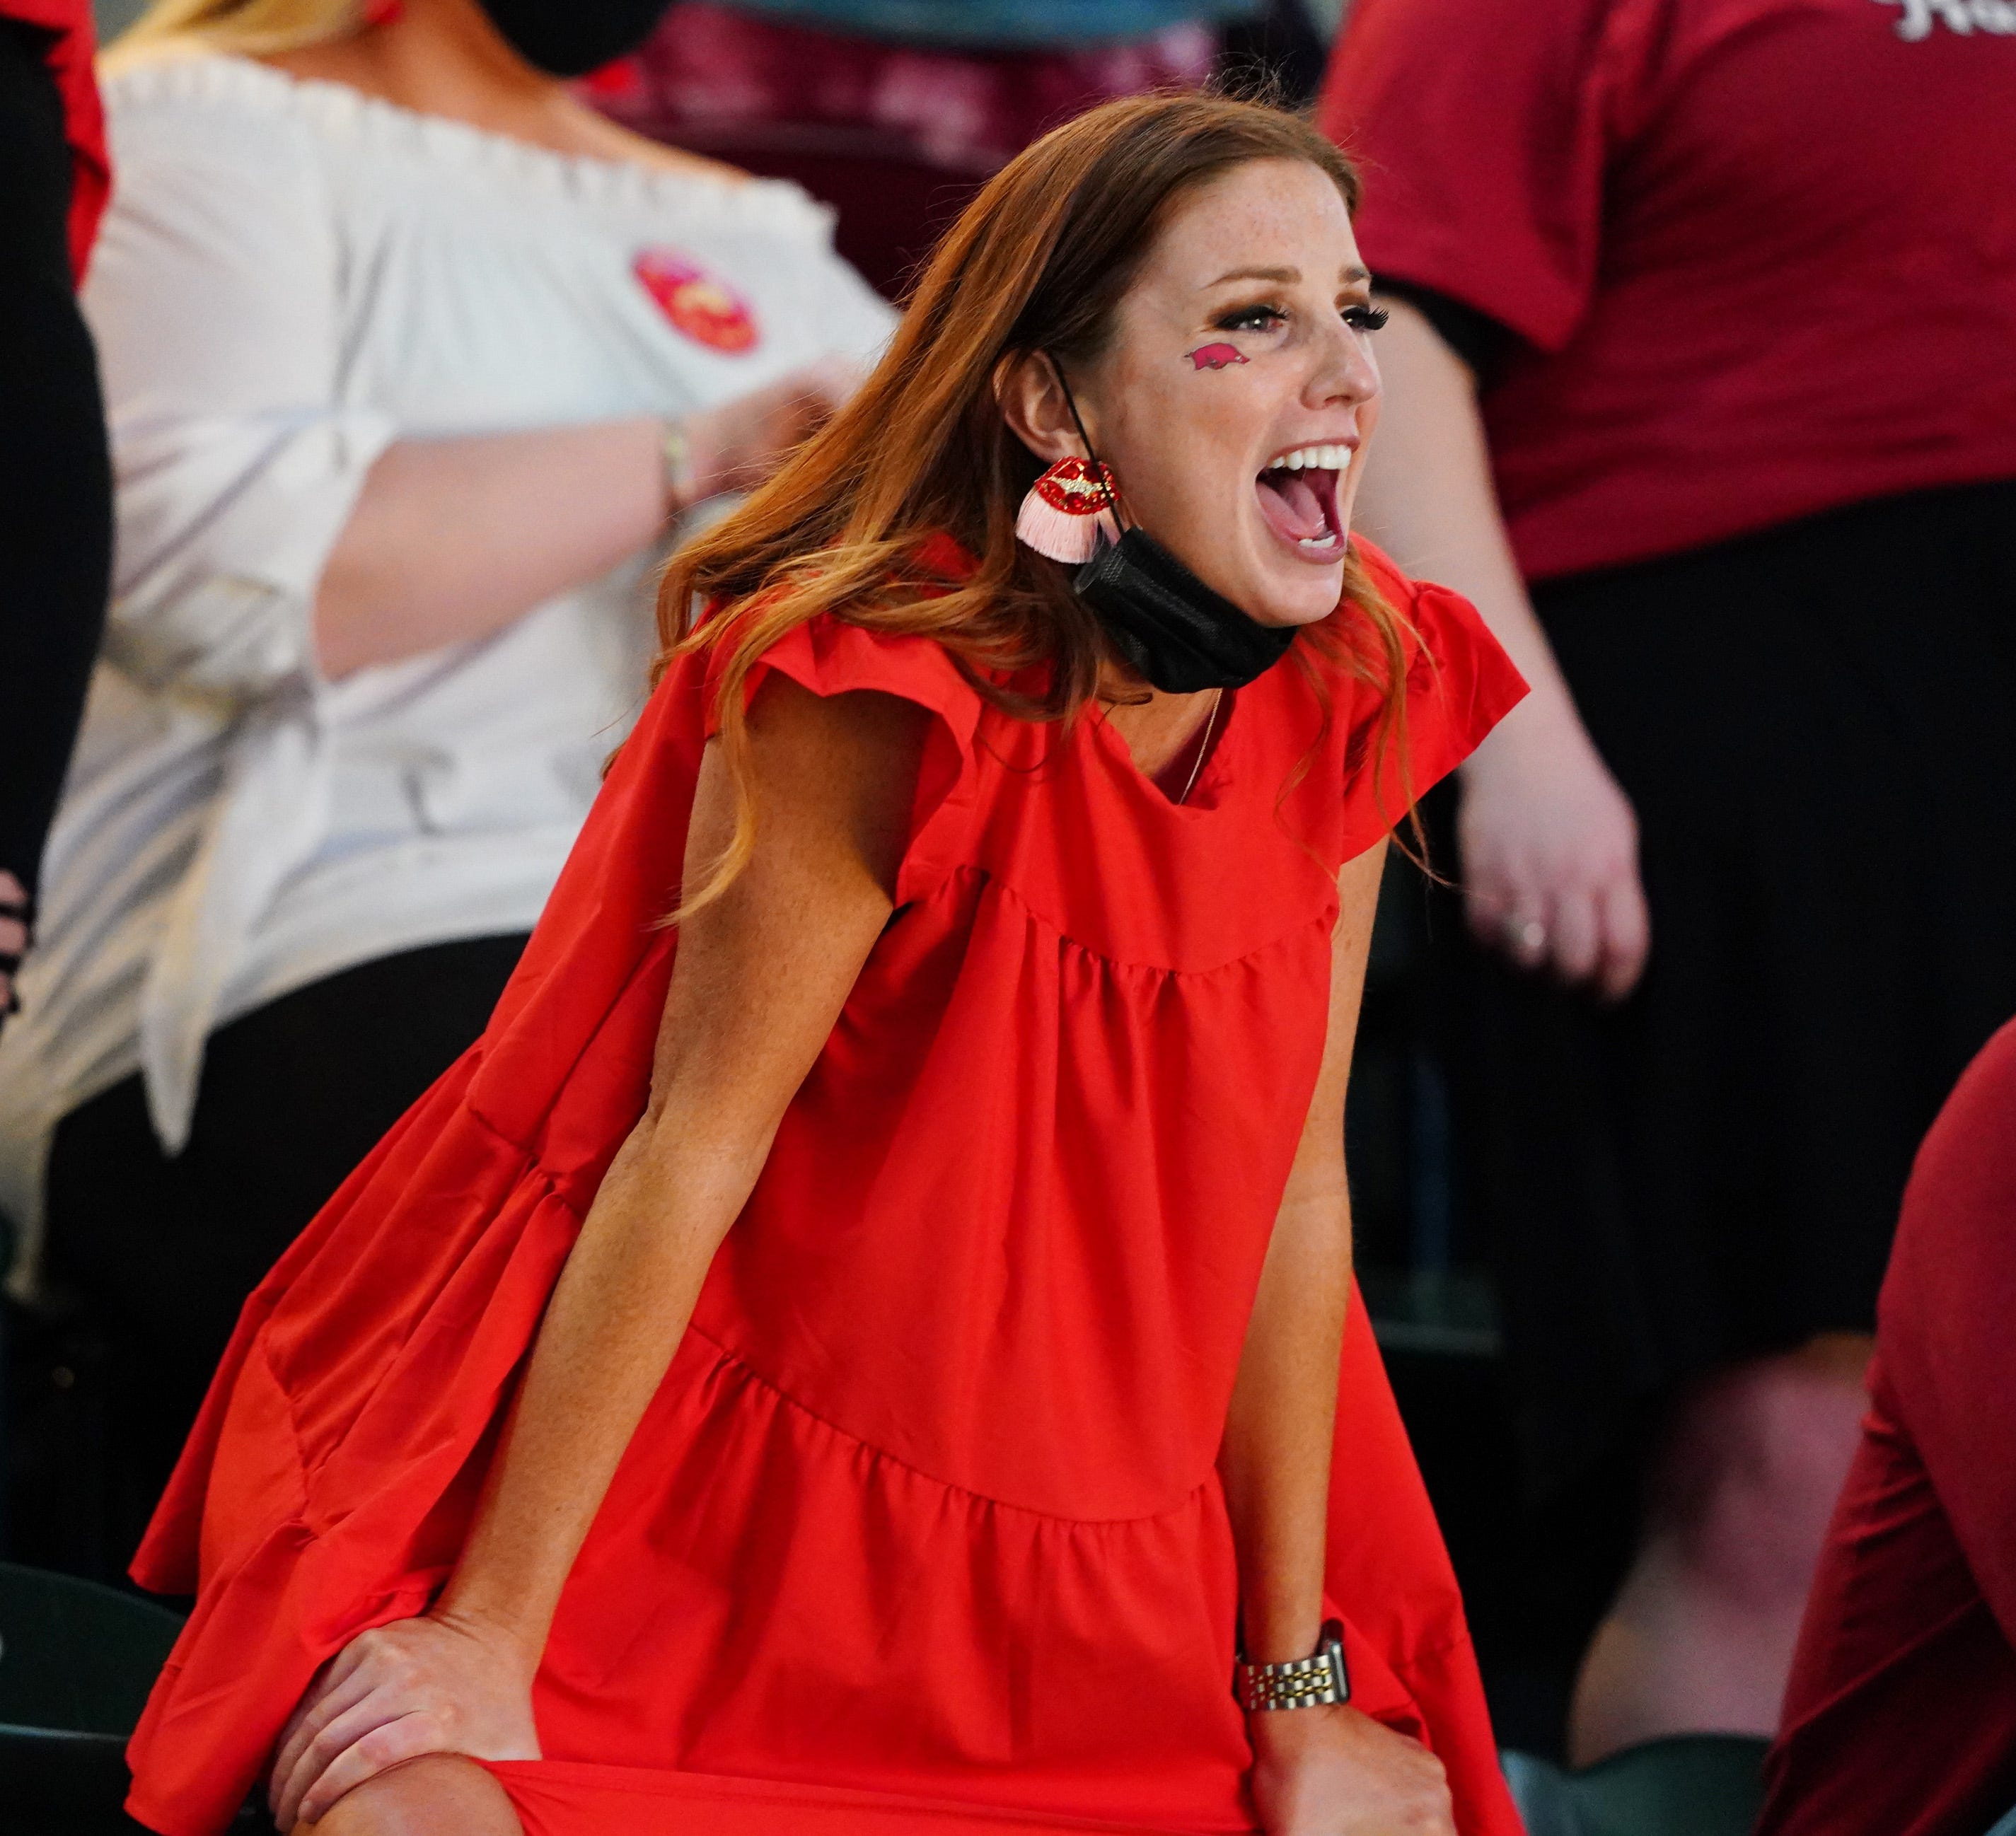 Arkansas fans savor the moment as Razorbacks reach Elite Eight for first time in 26 years